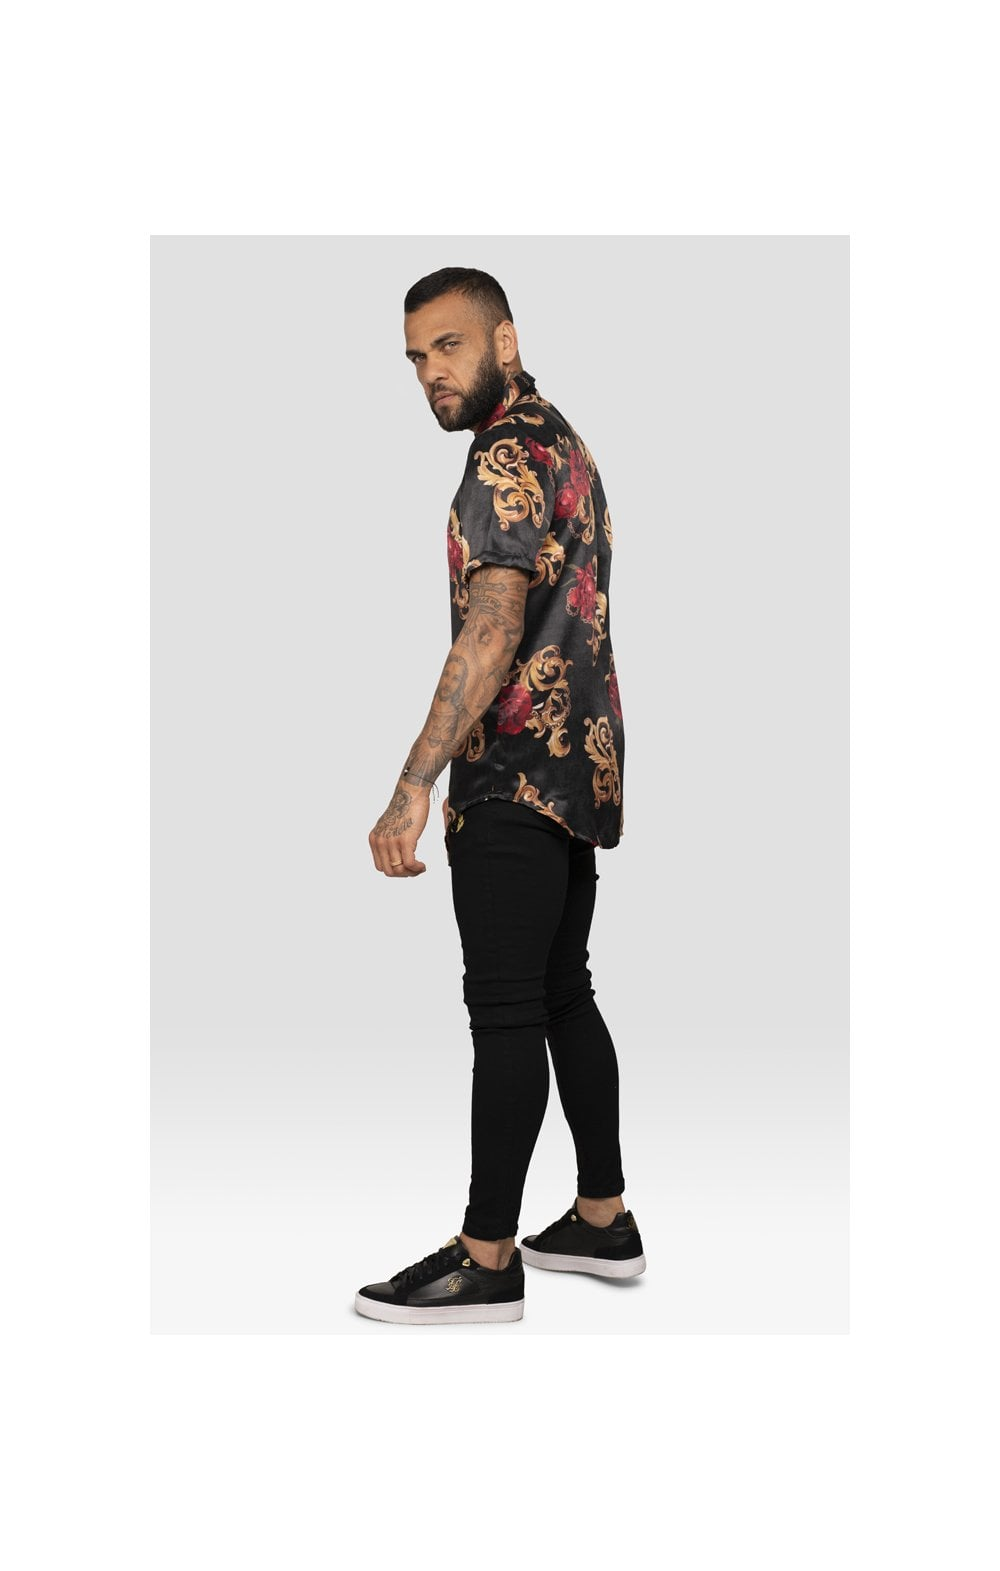 Load image into Gallery viewer, SikSilk x Dani Alves Low Rise Prestige Denims - Black (2)